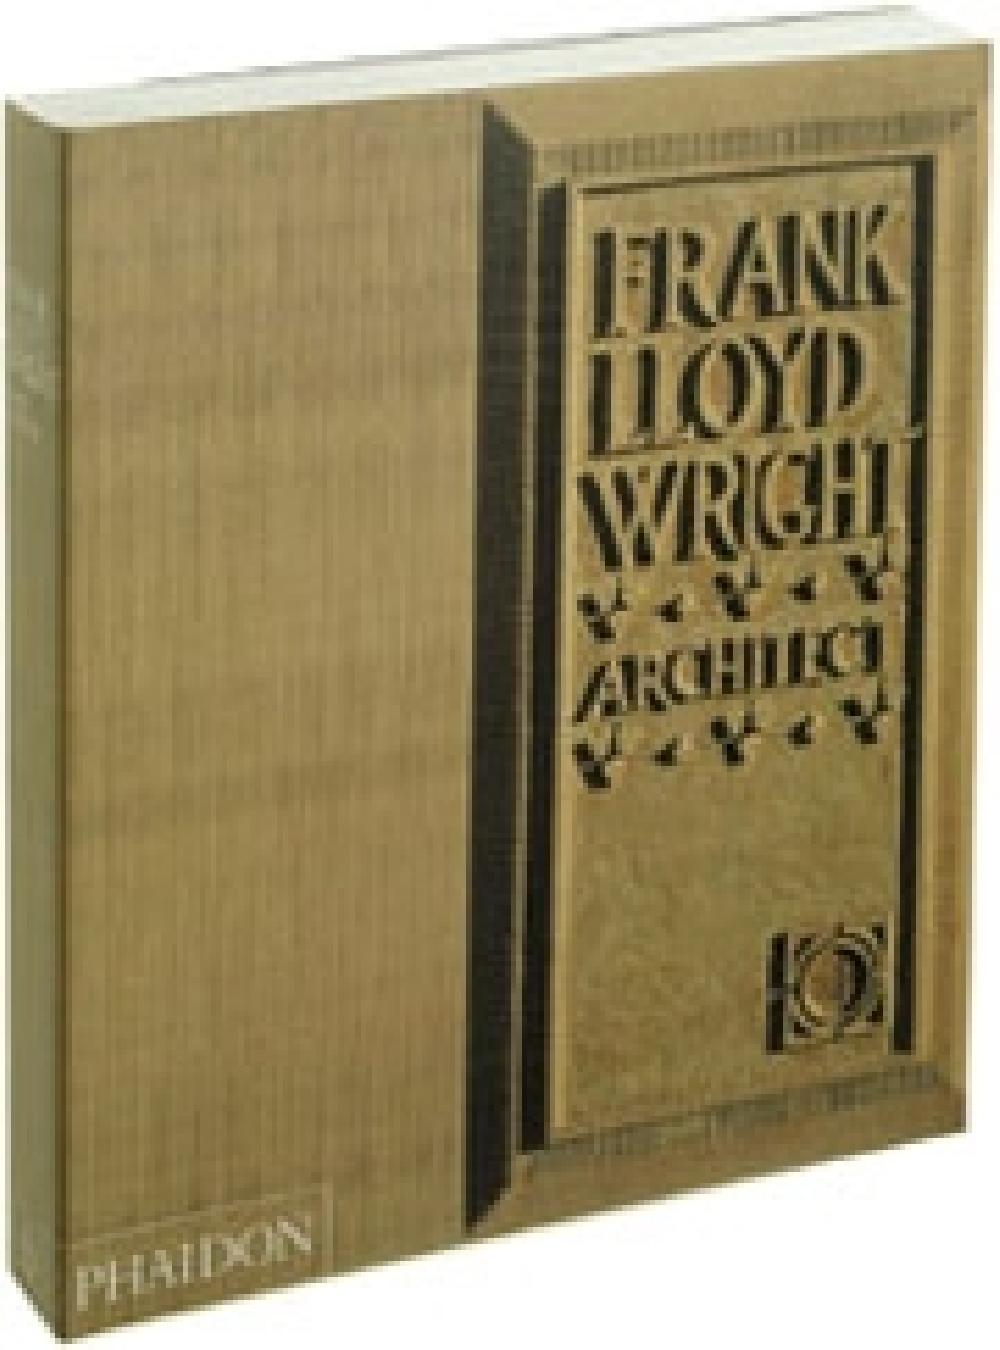 Frank Lloyd Wright - Architecte